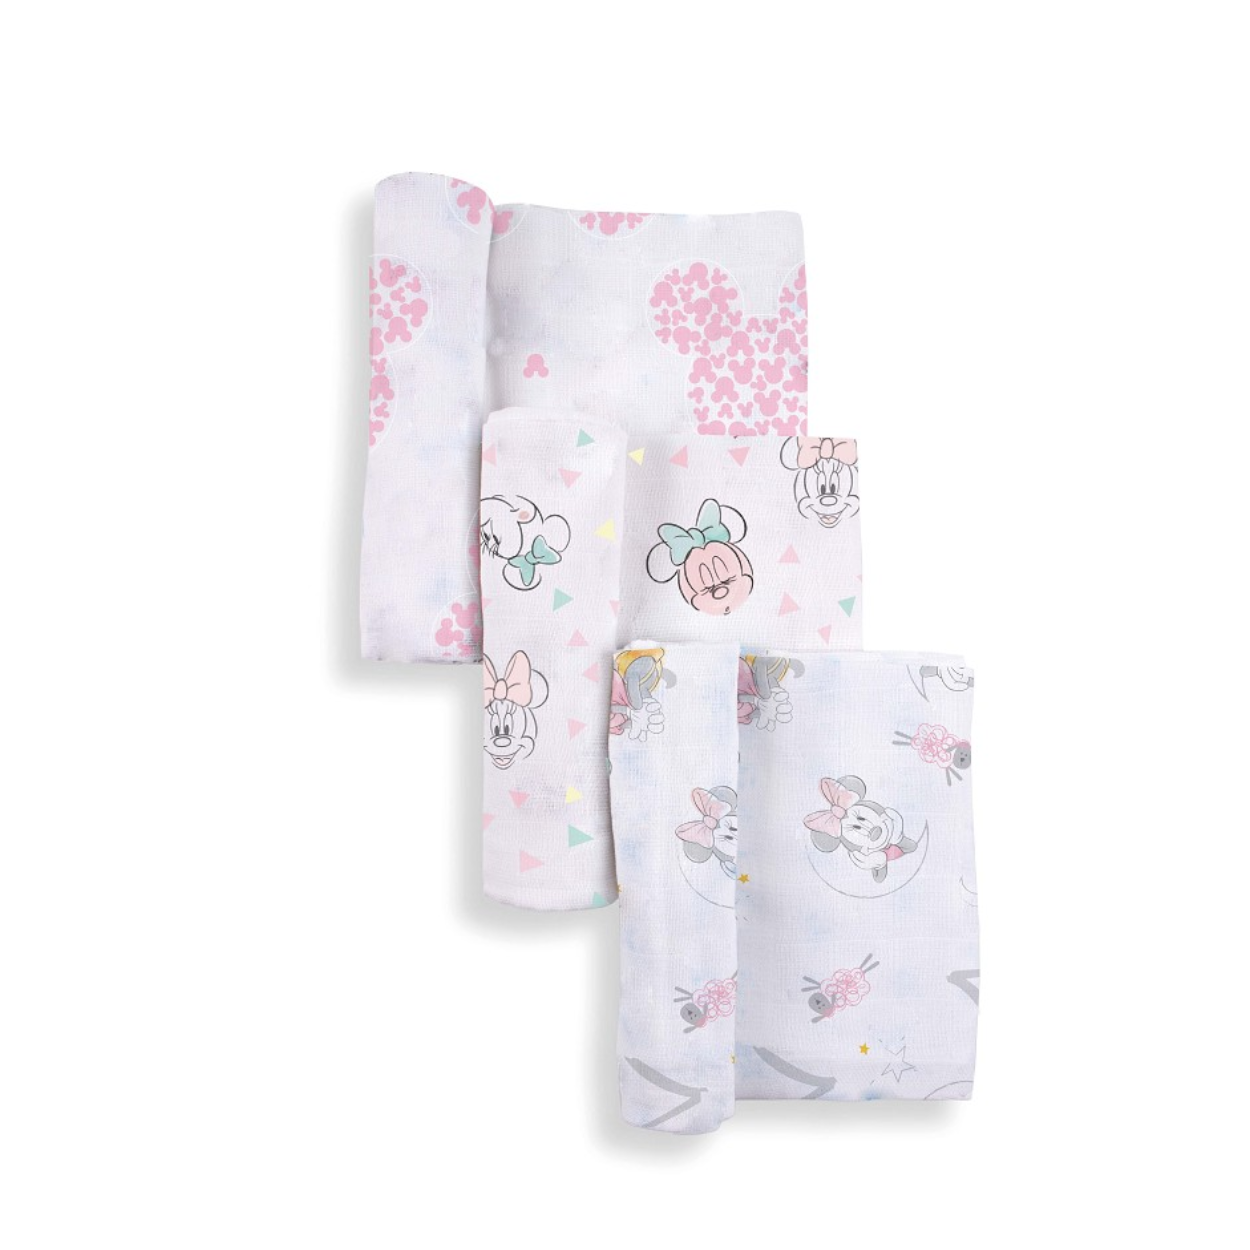 Pack 3 gasitas Minnie Mouse Disney baby